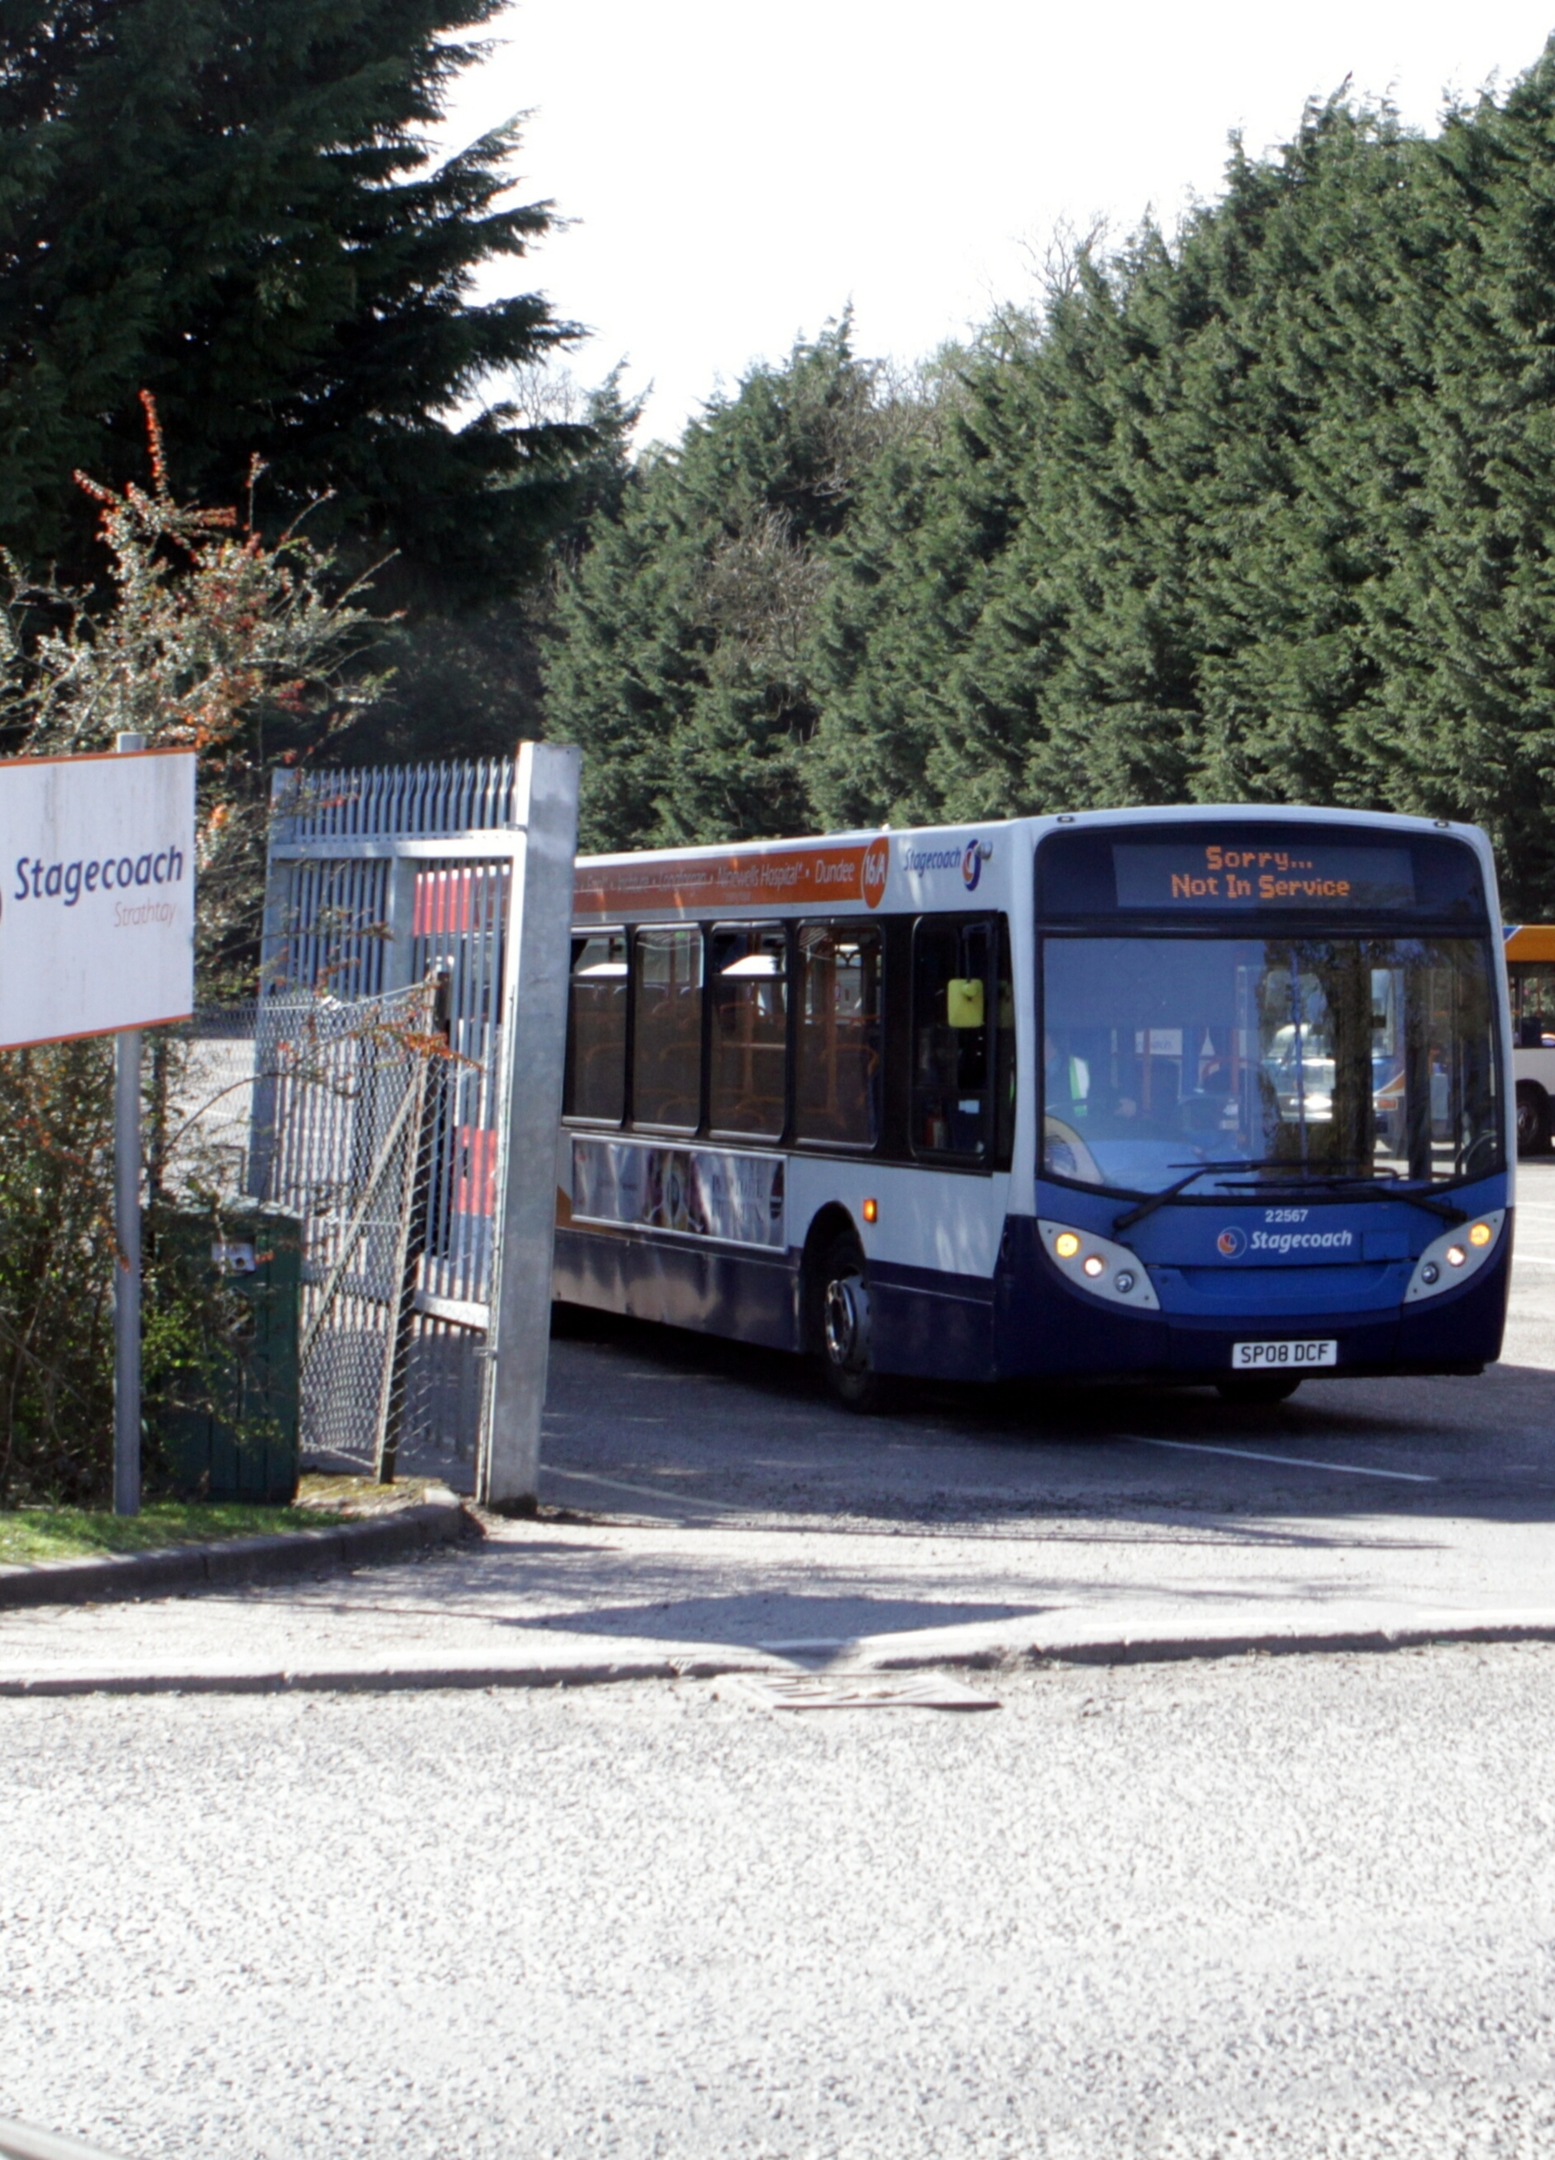 The Stagecoach bus depot on Smeaton Road in Dundee.